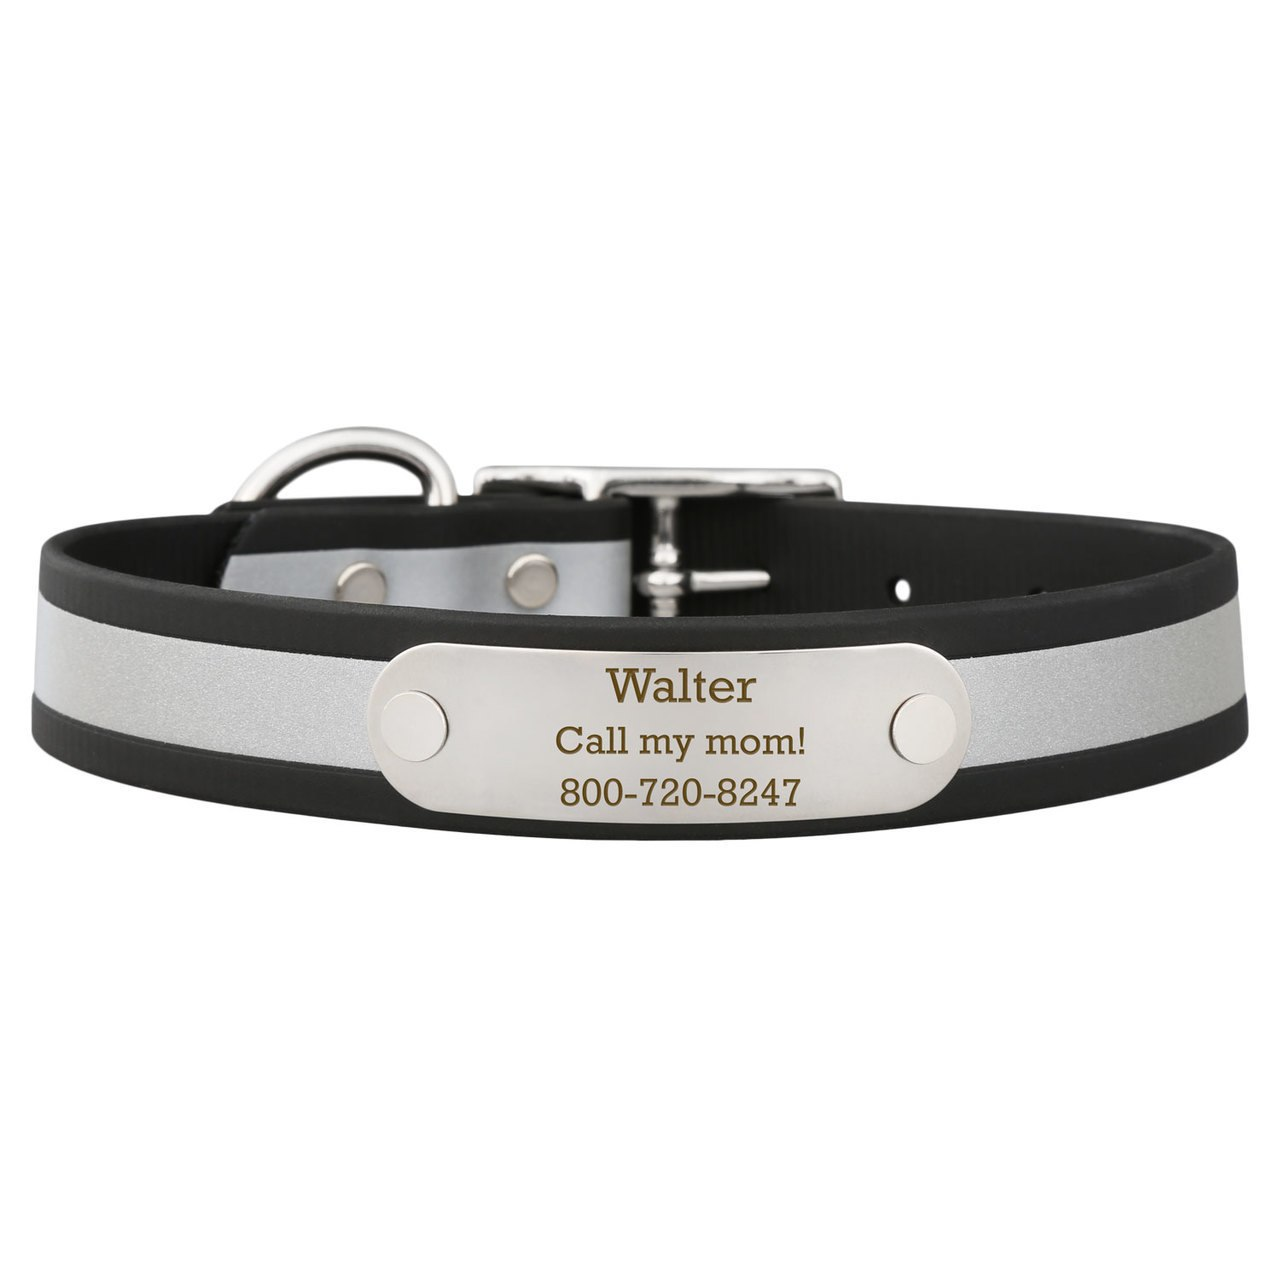 Reflective Waterproof Soft Grip Dog Collar with Nameplate Black